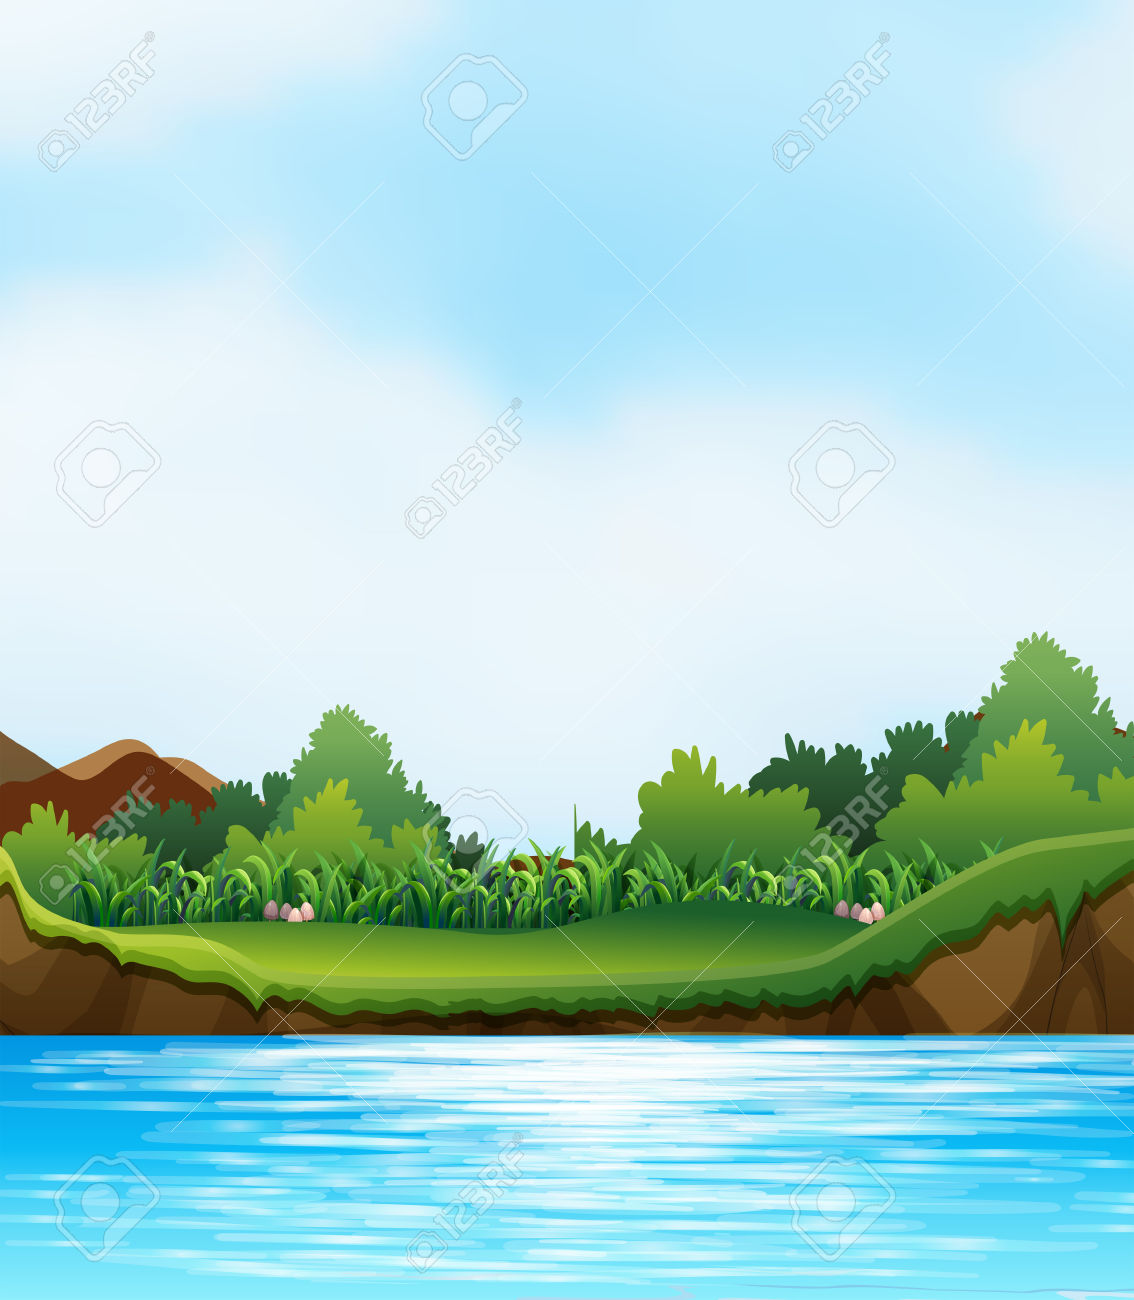 River bank clipart image library stock 831 River Bank Stock Vector Illustration And Royalty Free River ... image library stock